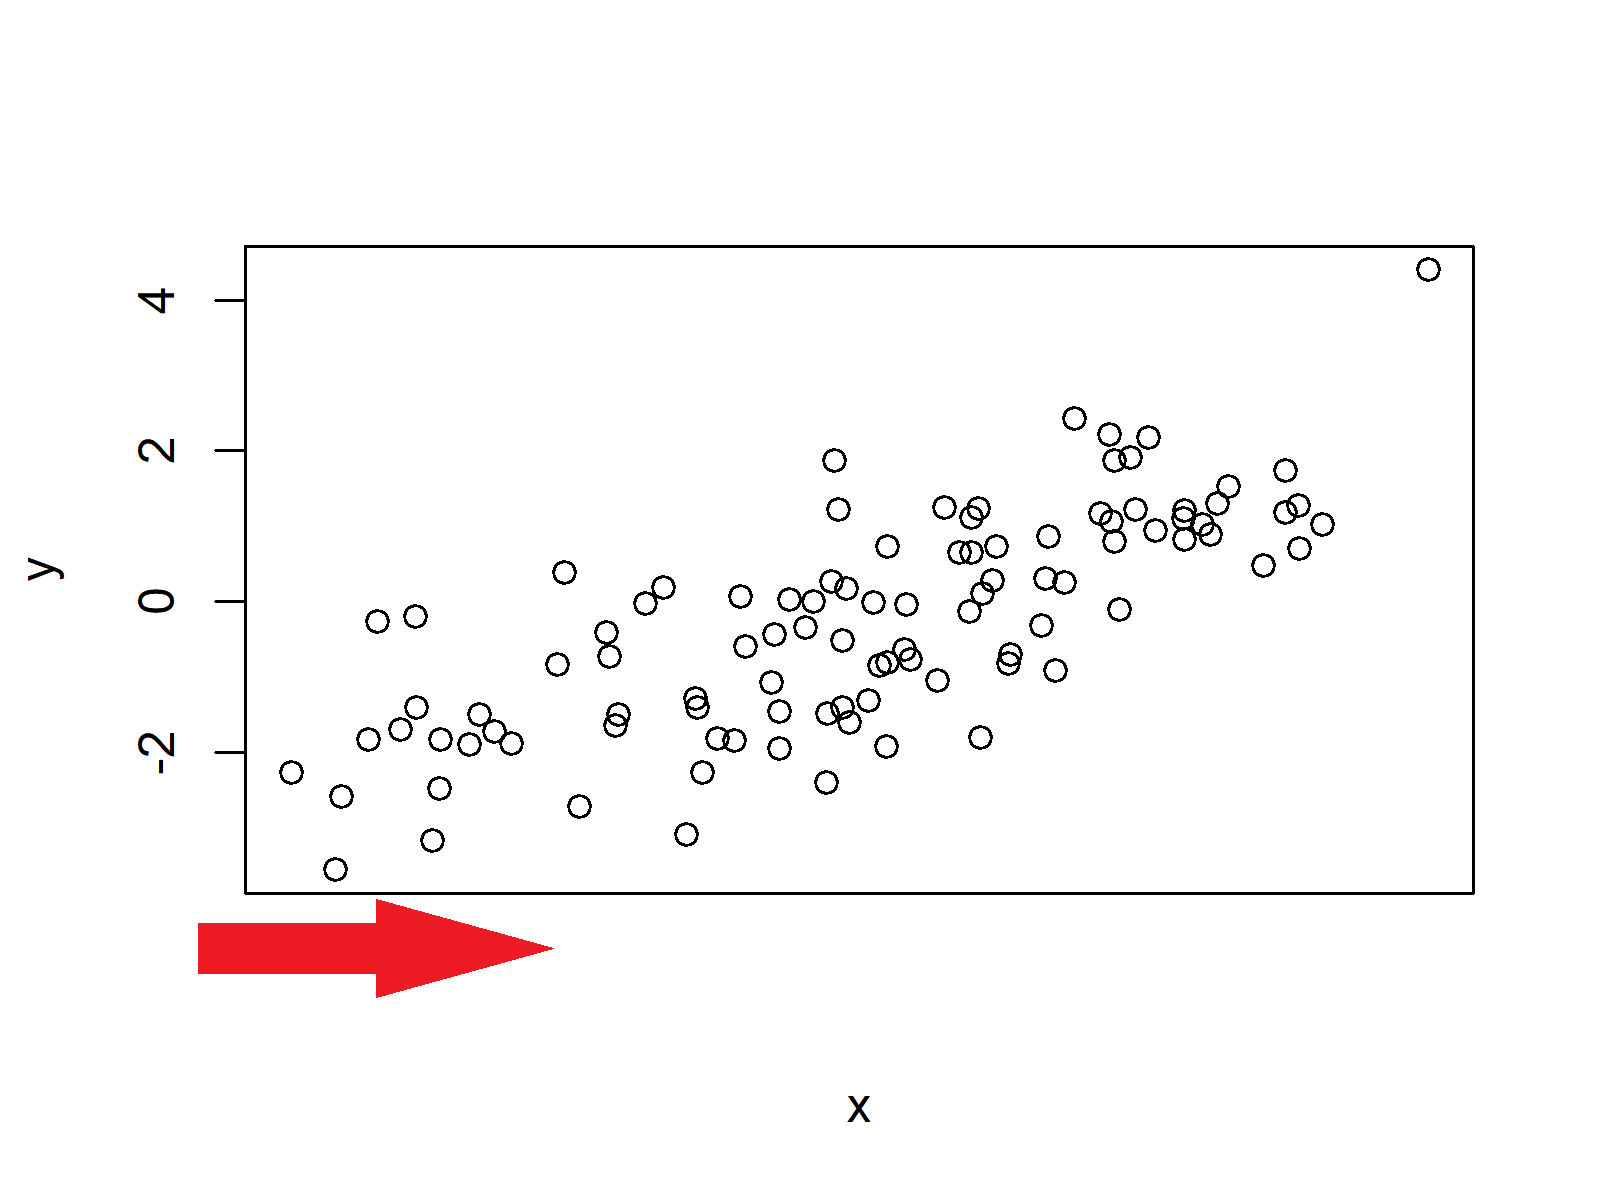 no values on x axis in base r plot